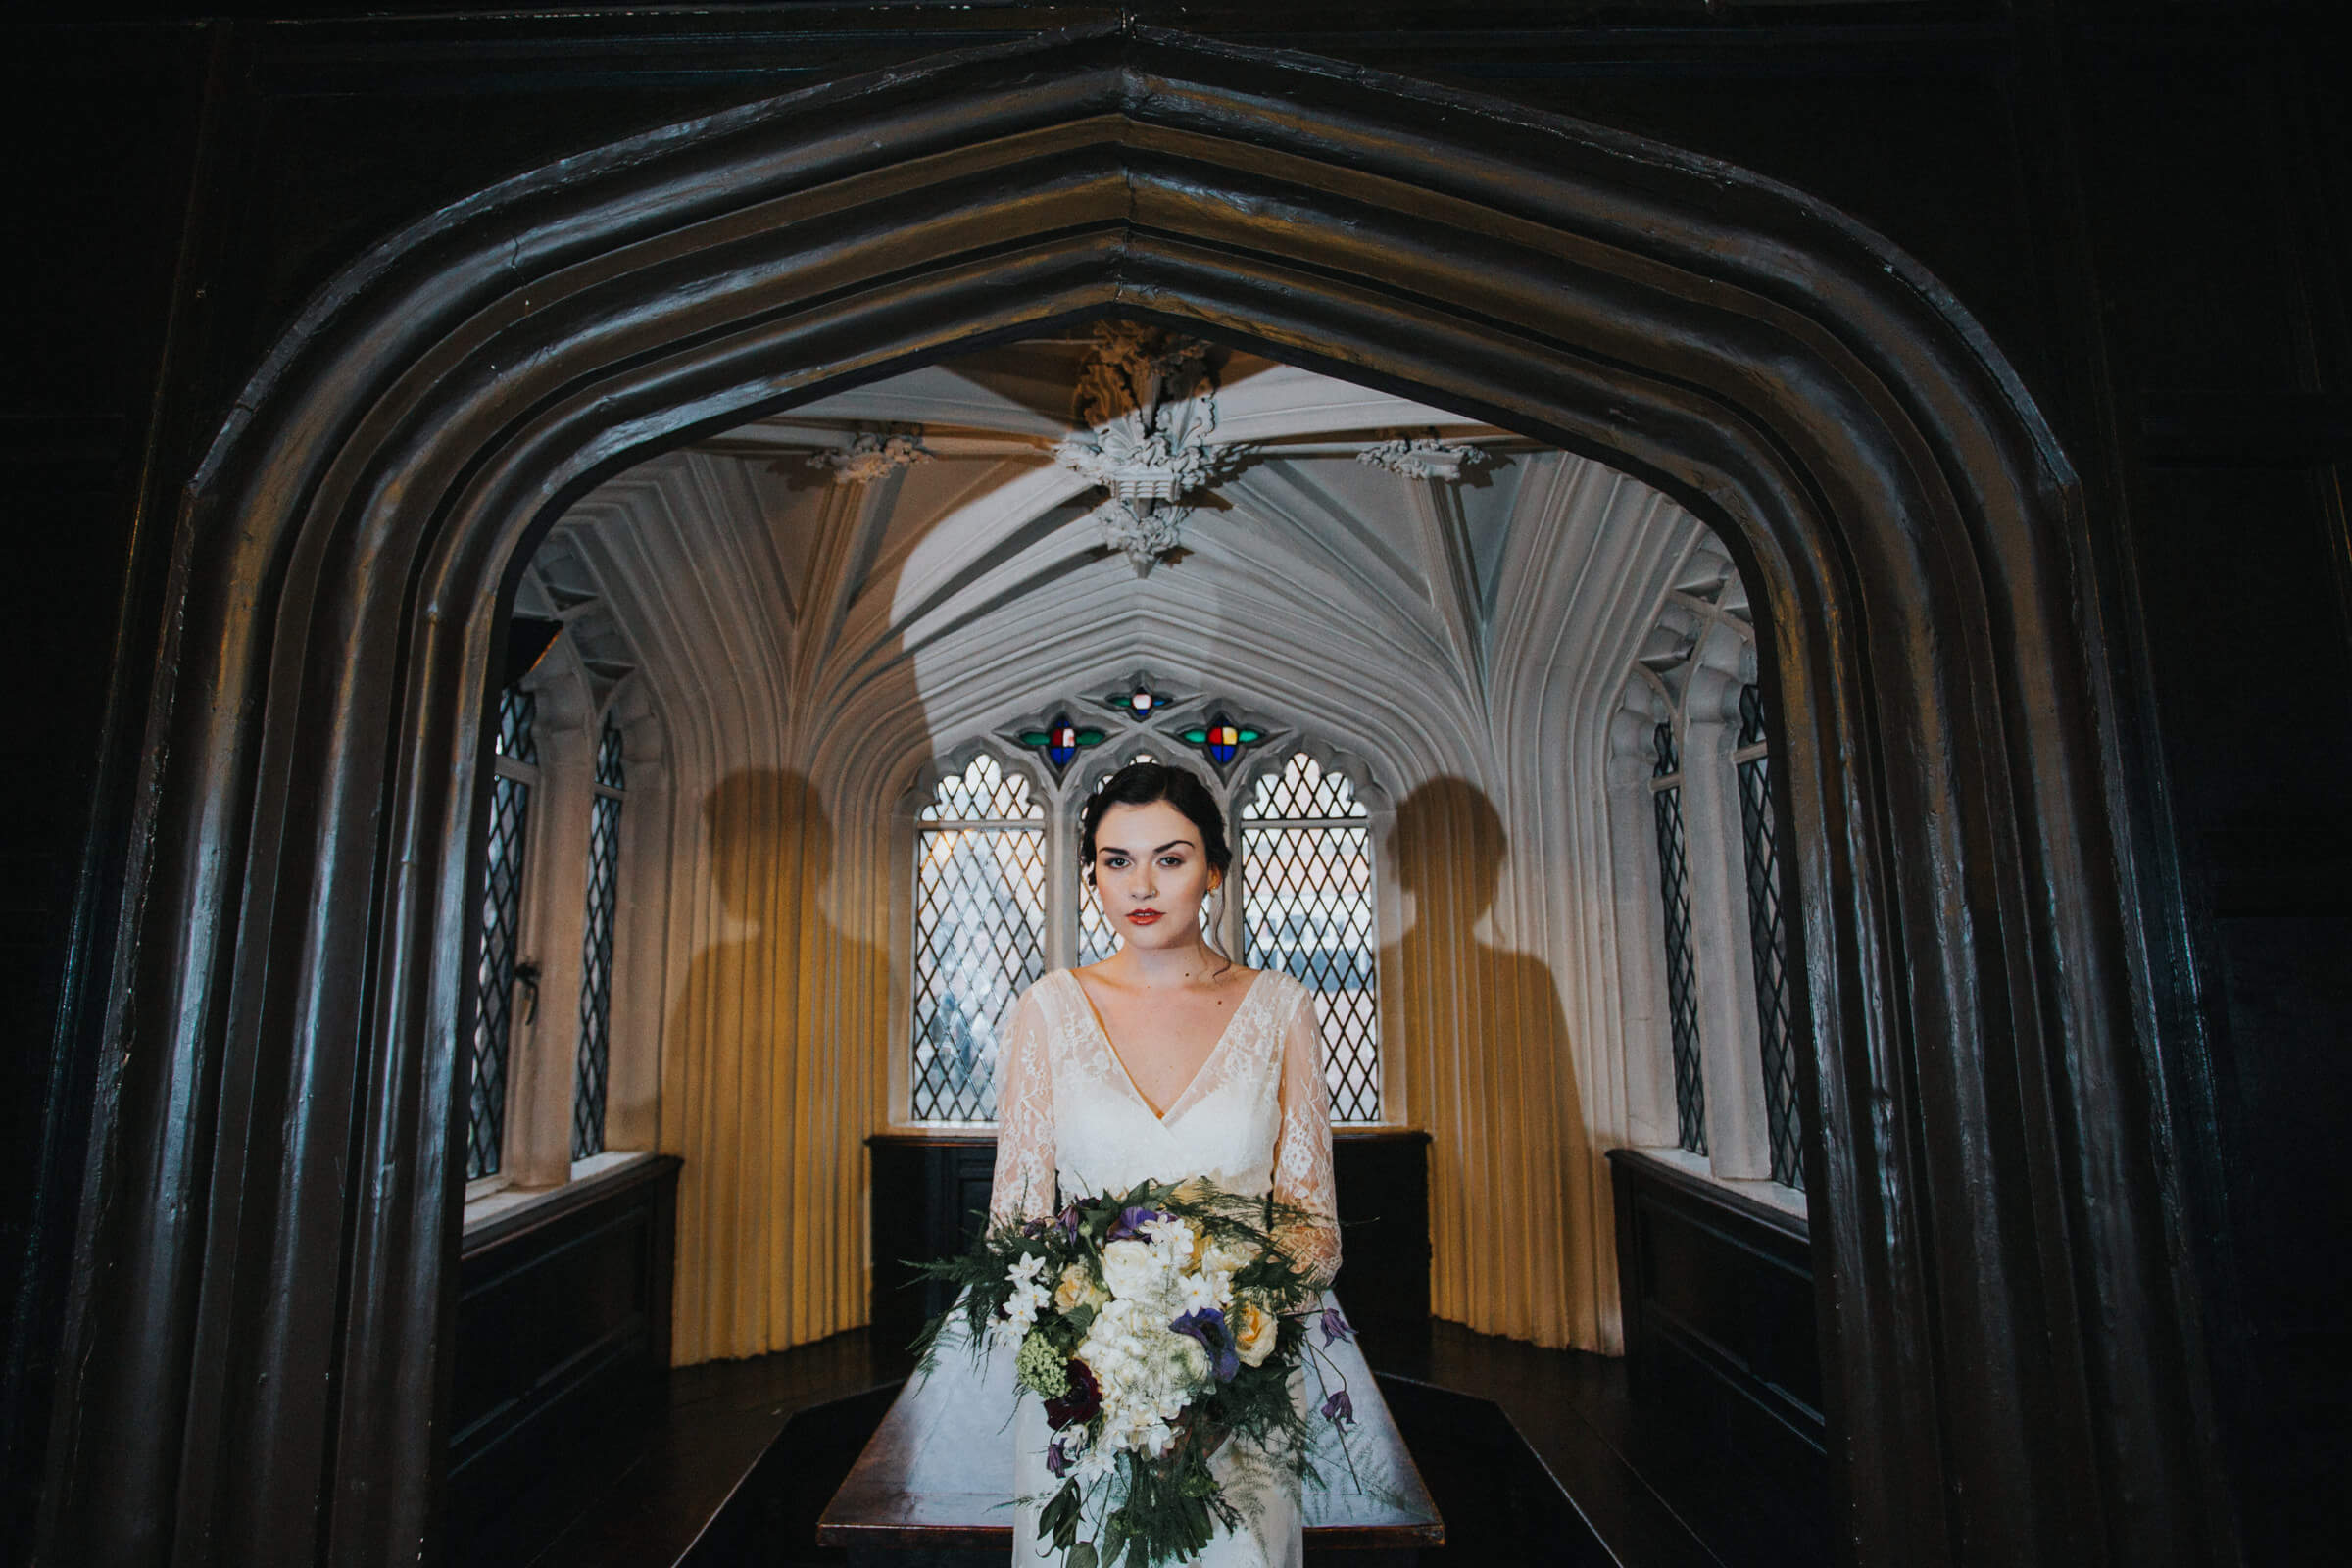 Manchester Wedding Photographer Stephen McGowan Chethams School of Music 40.jpg